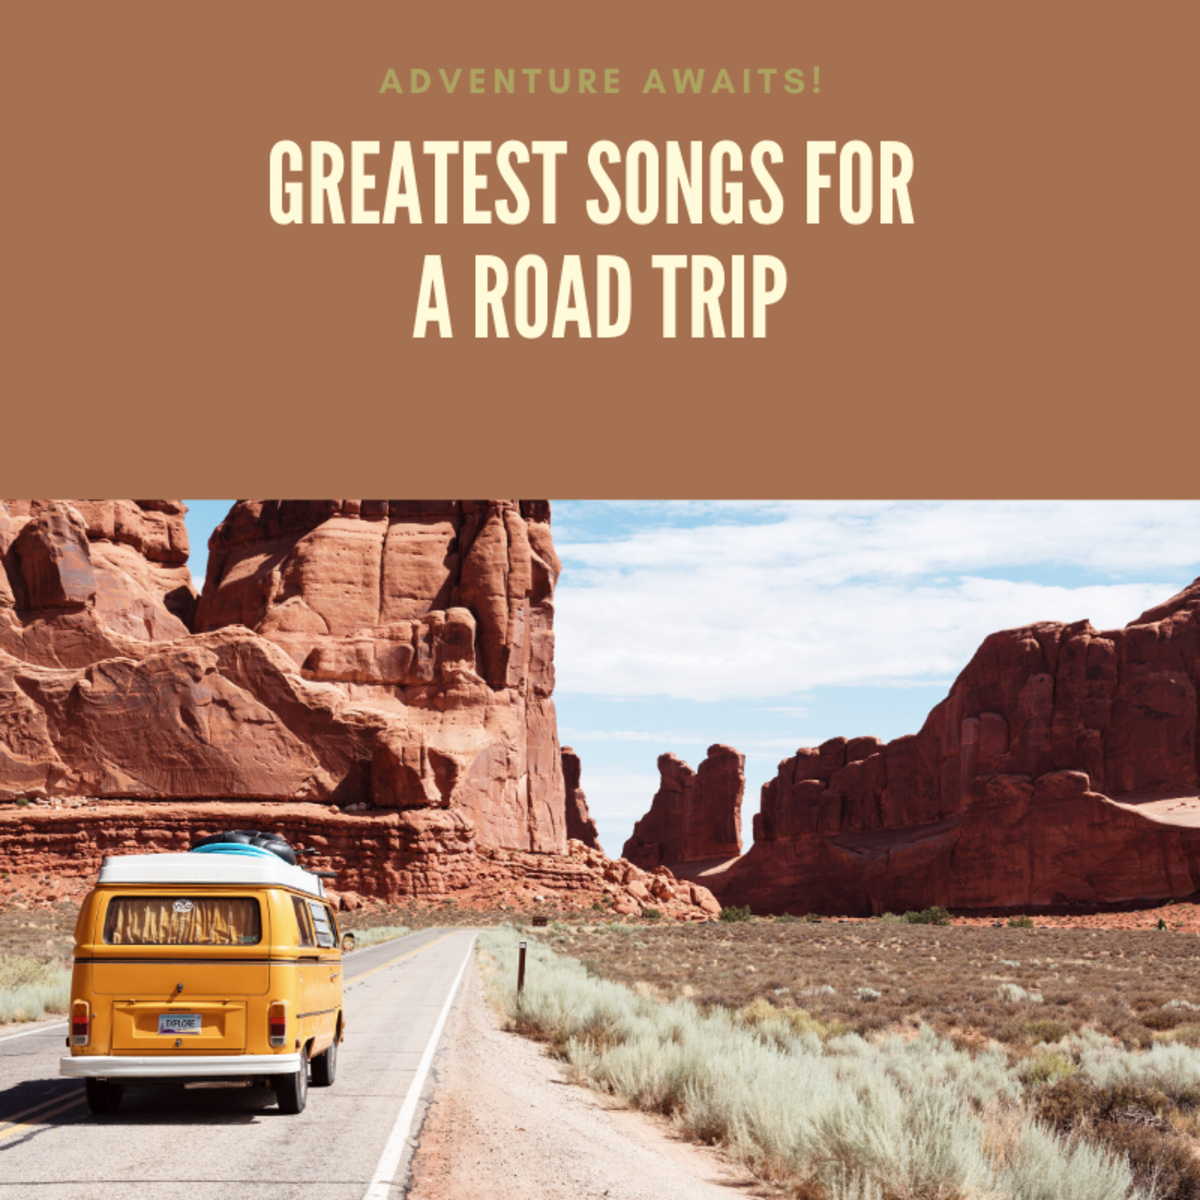 These songs are perfect for a road trip with your friends!